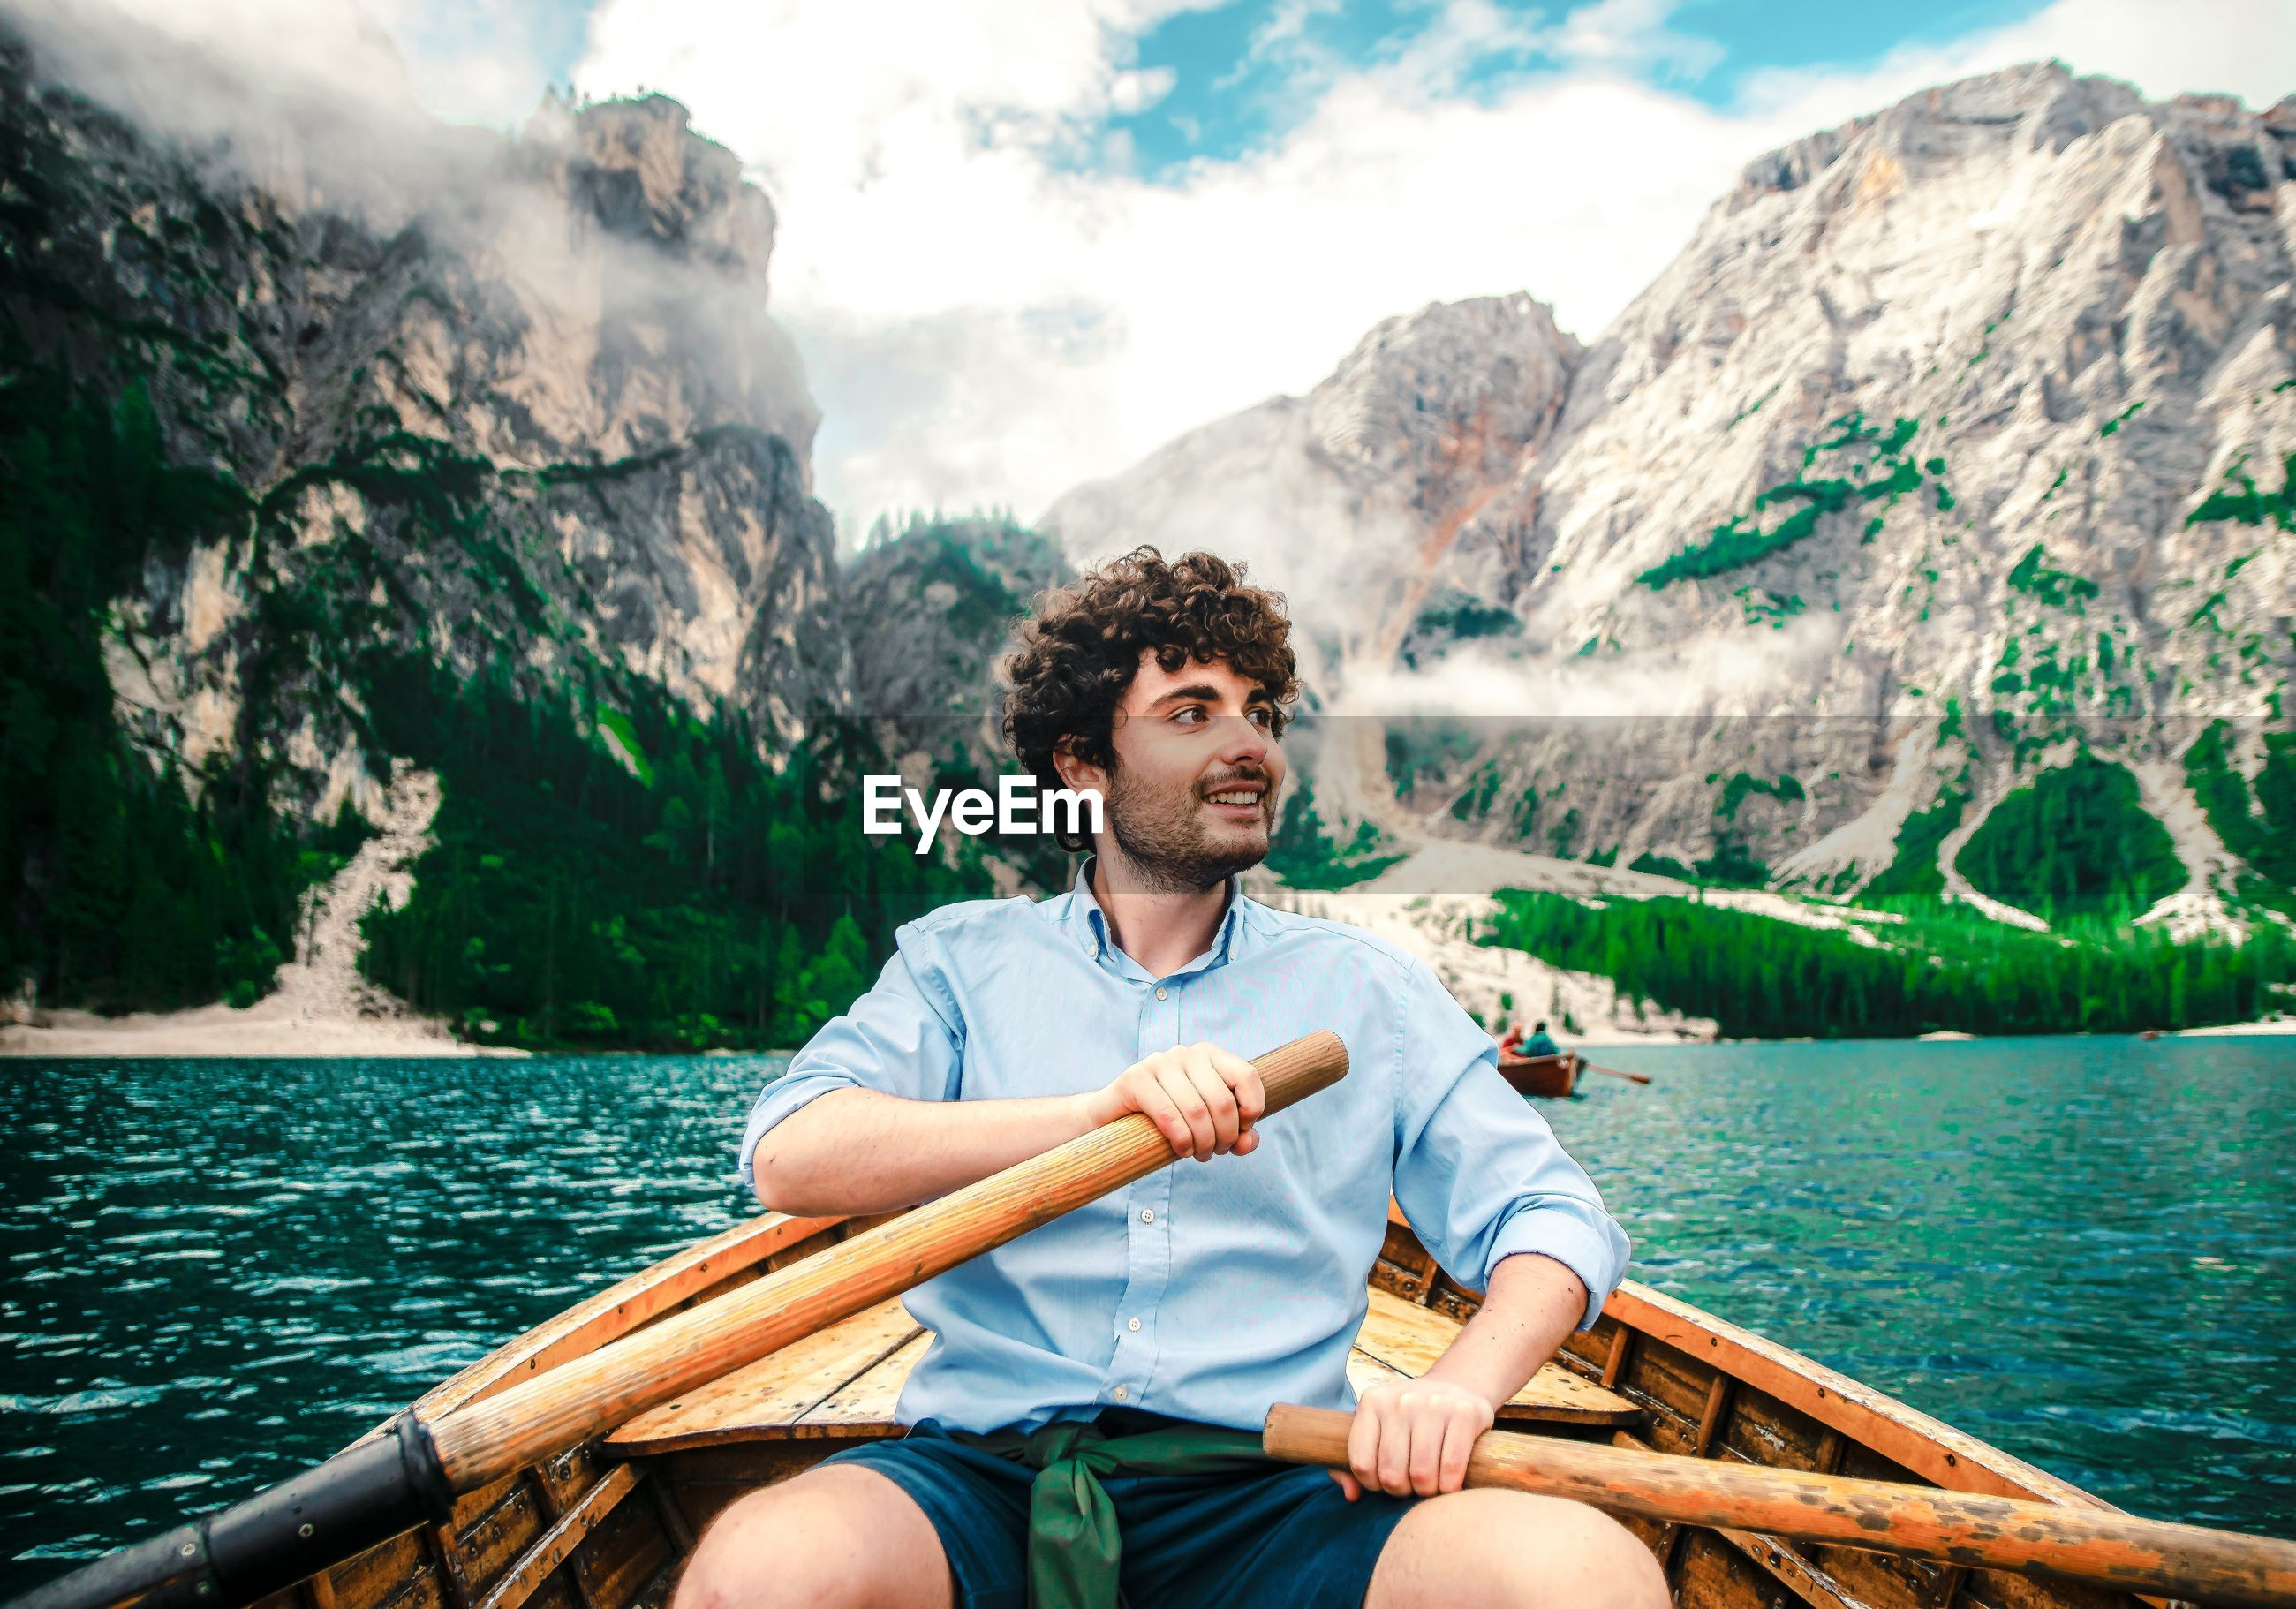 MAN SITTING IN BOAT AGAINST MOUNTAINS